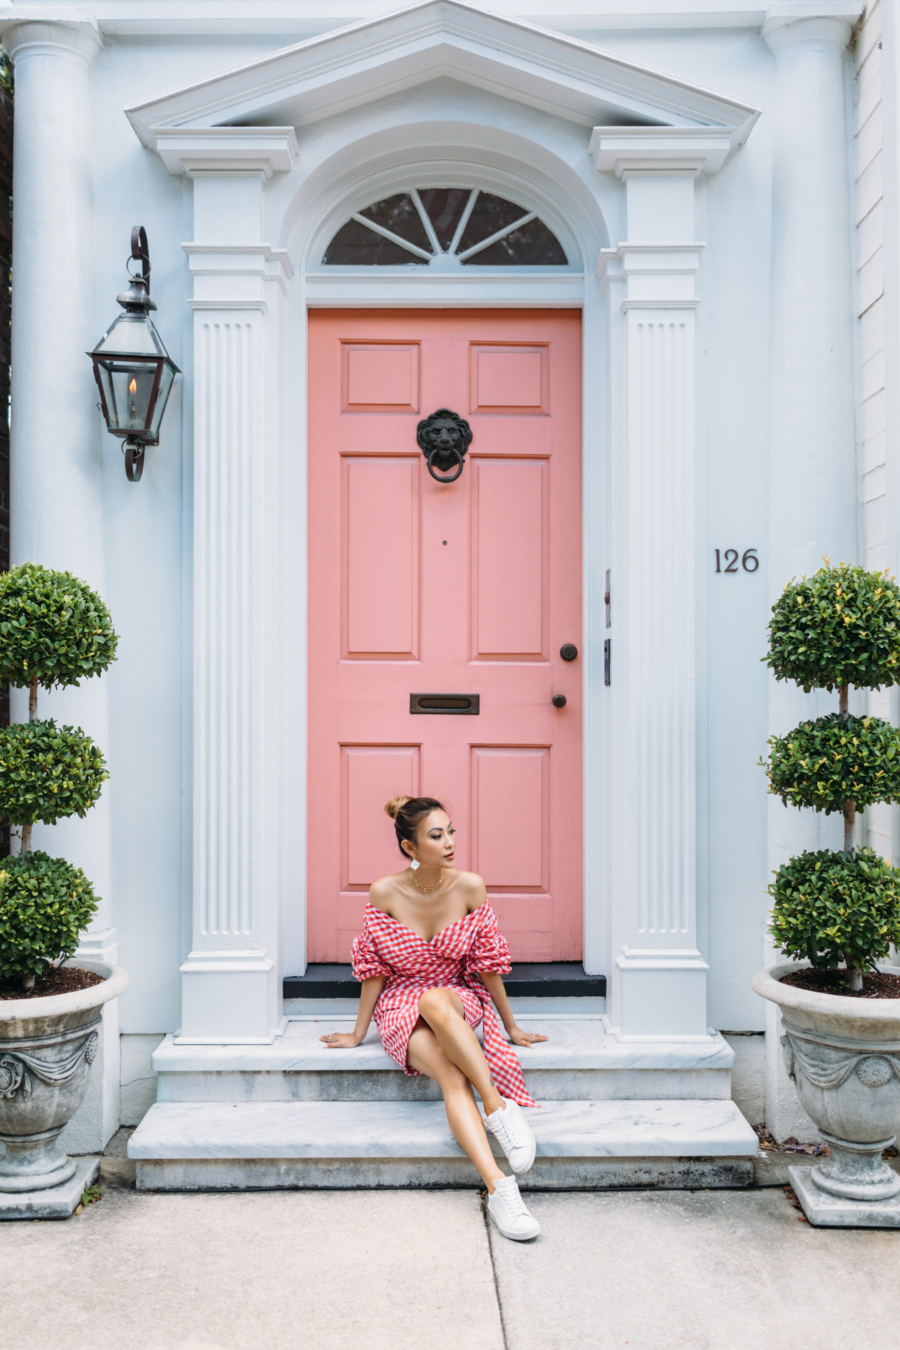 Charleston Pink Door and Red Gingham - Travel Guide: 36 hours in Charleston, SC // NotJessFashion.com